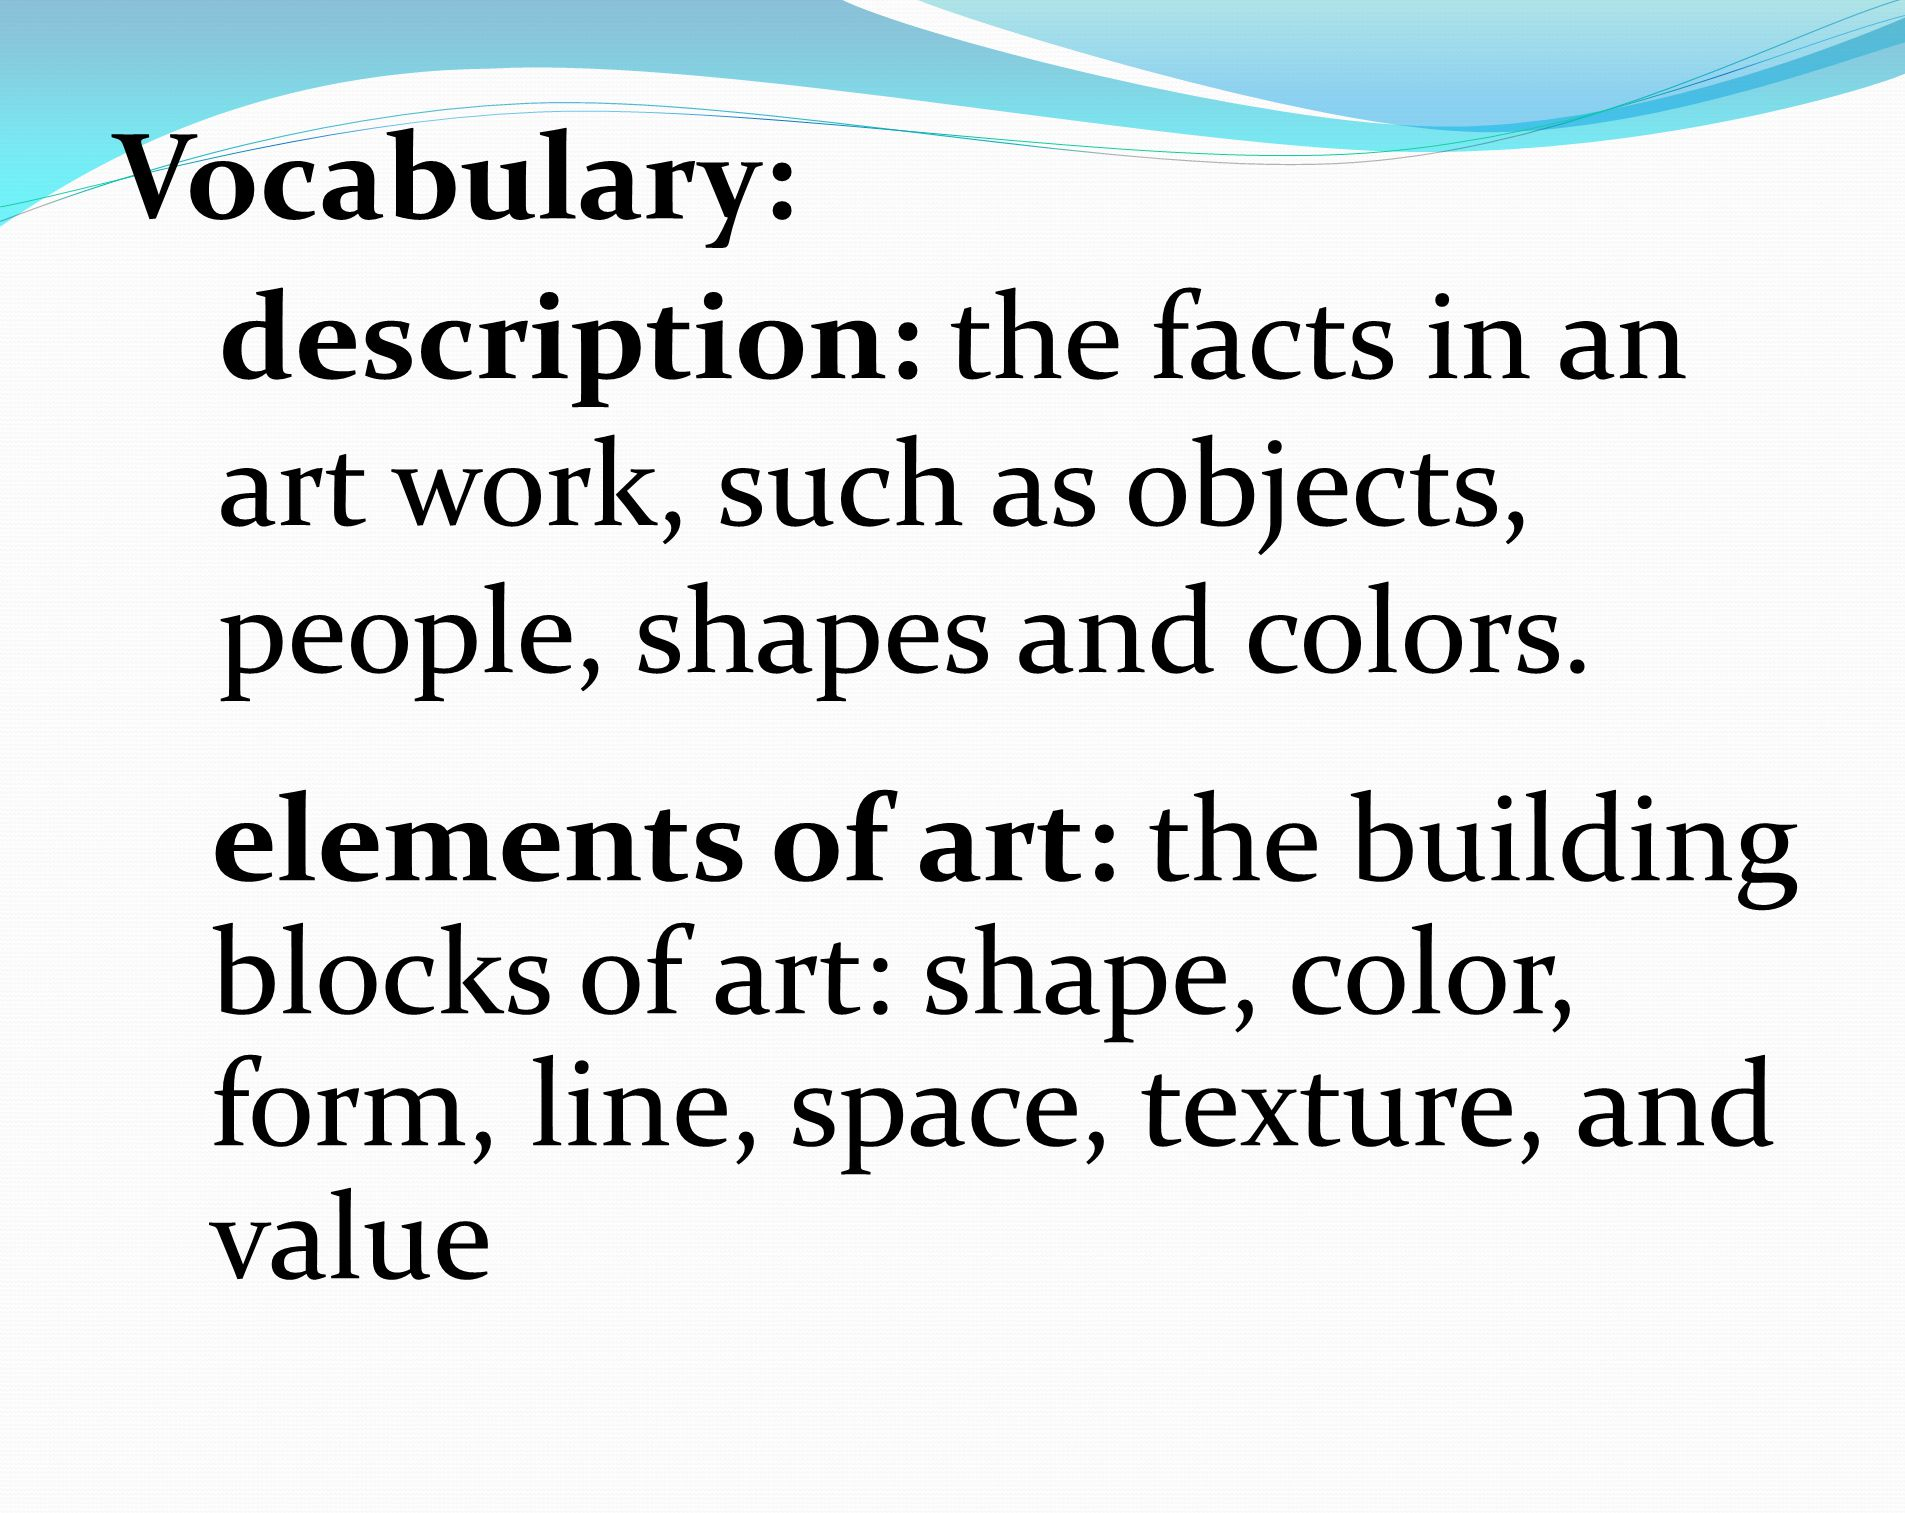 Vocabulary: description: the facts in an art work, such as objects, people, shapes and colors.